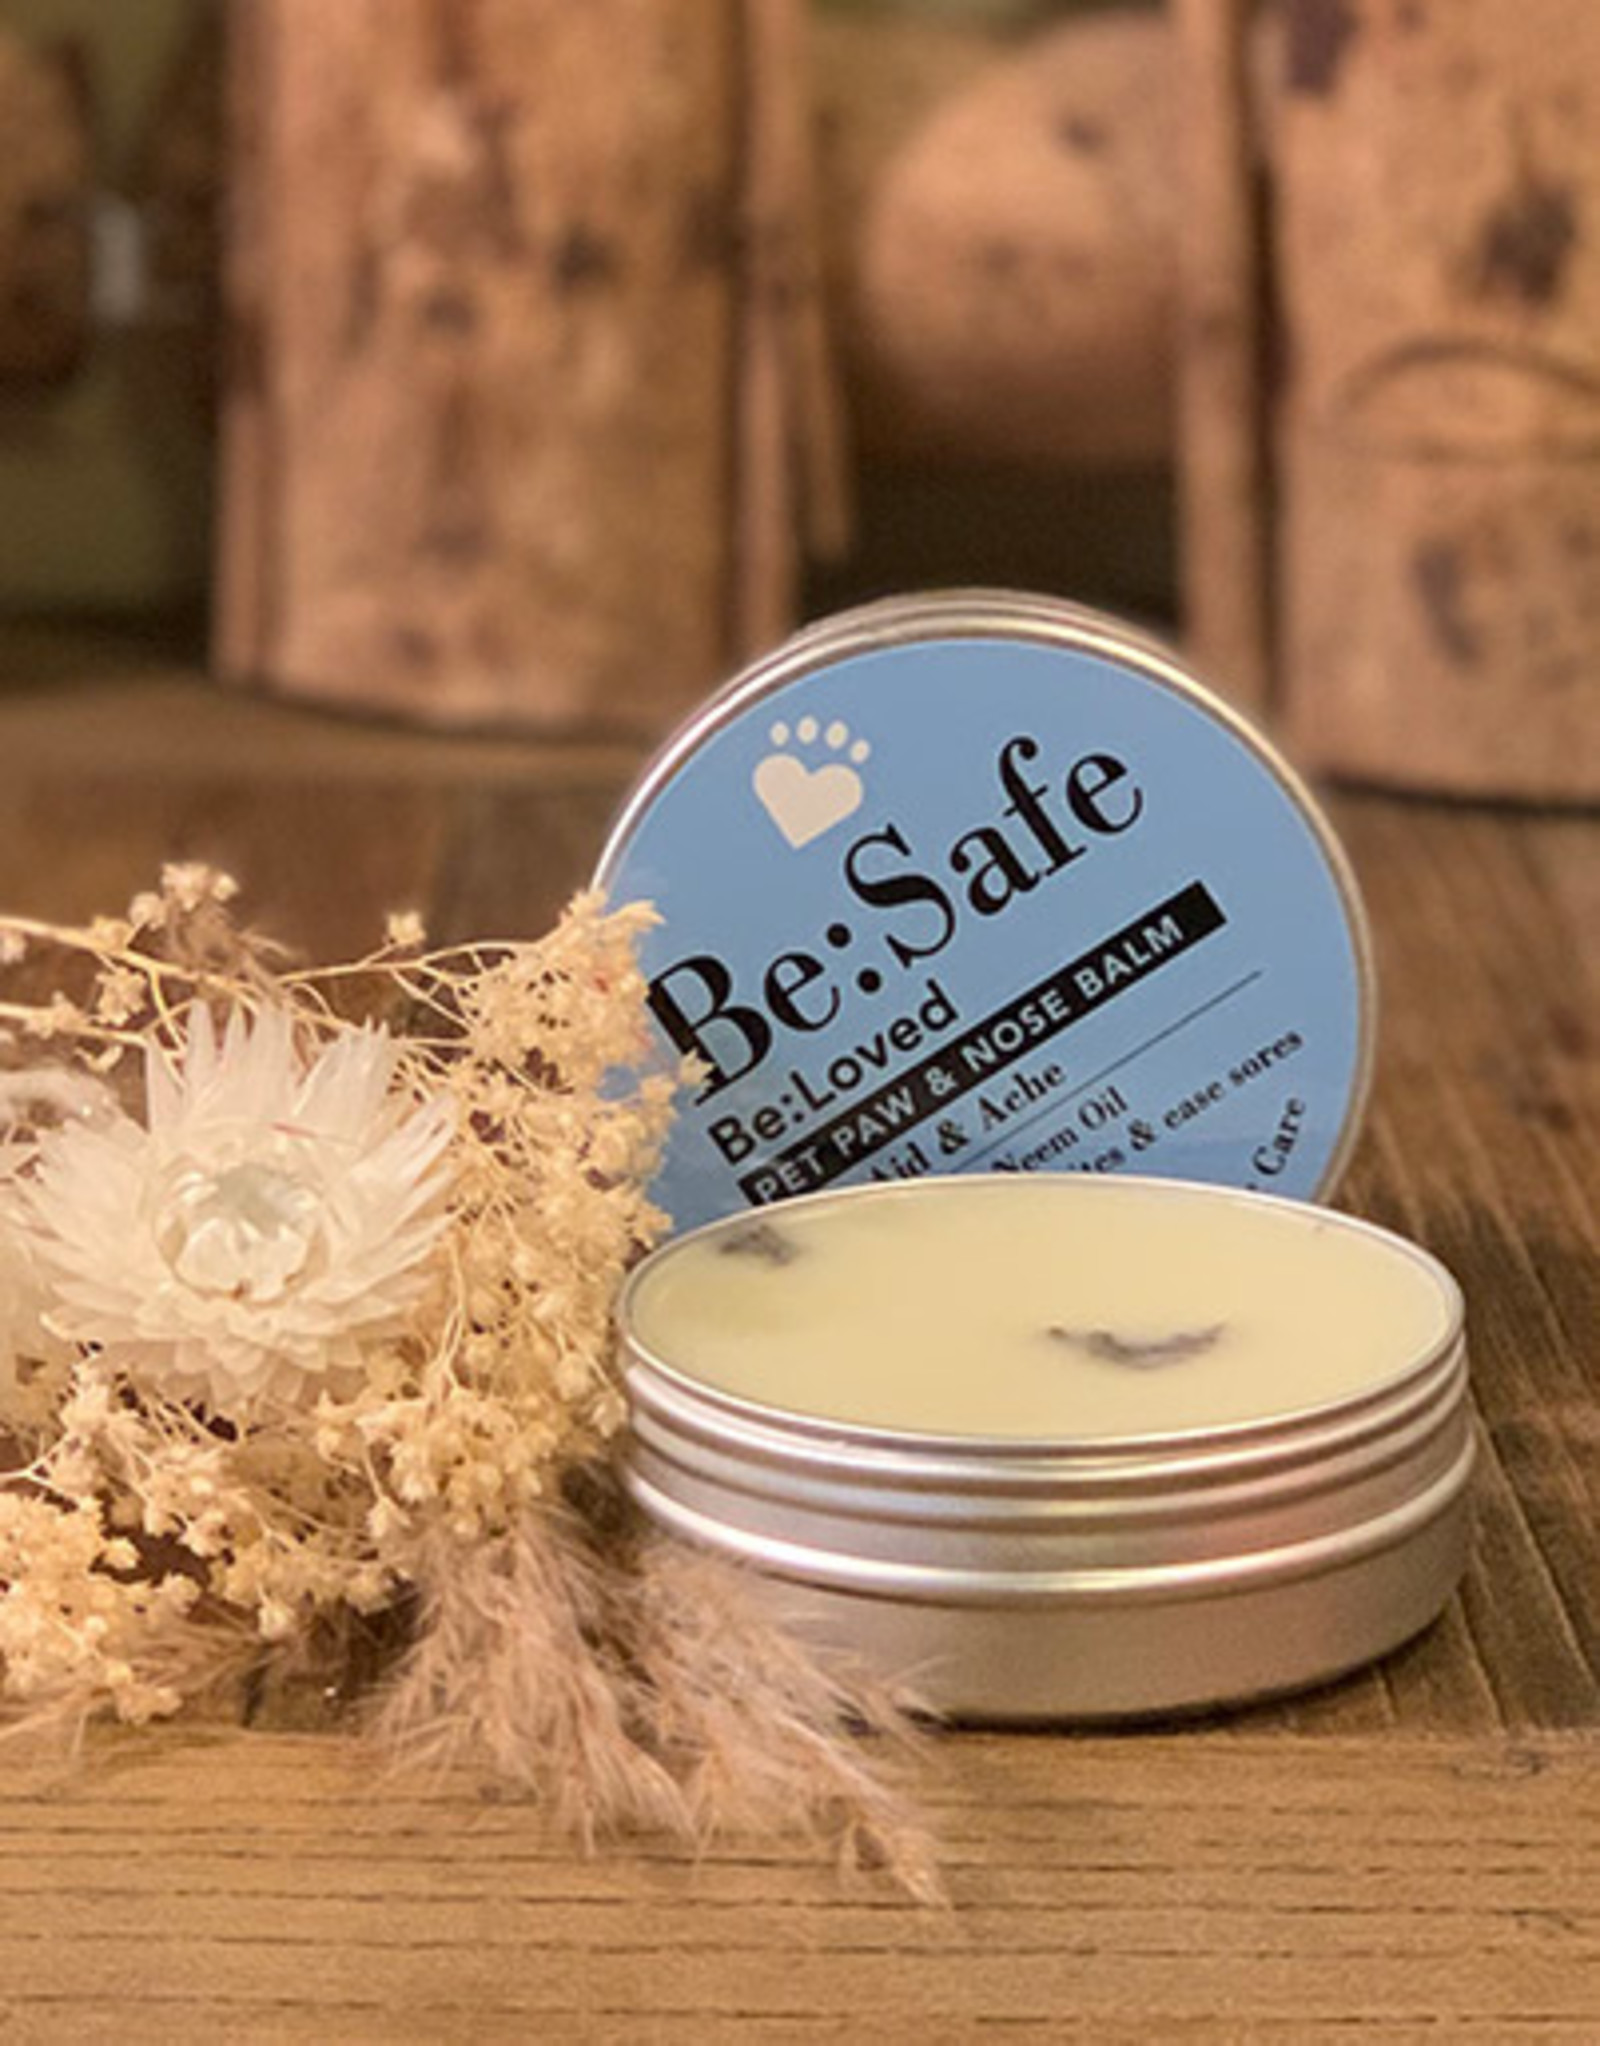 First Aid Nose and Paw Balm